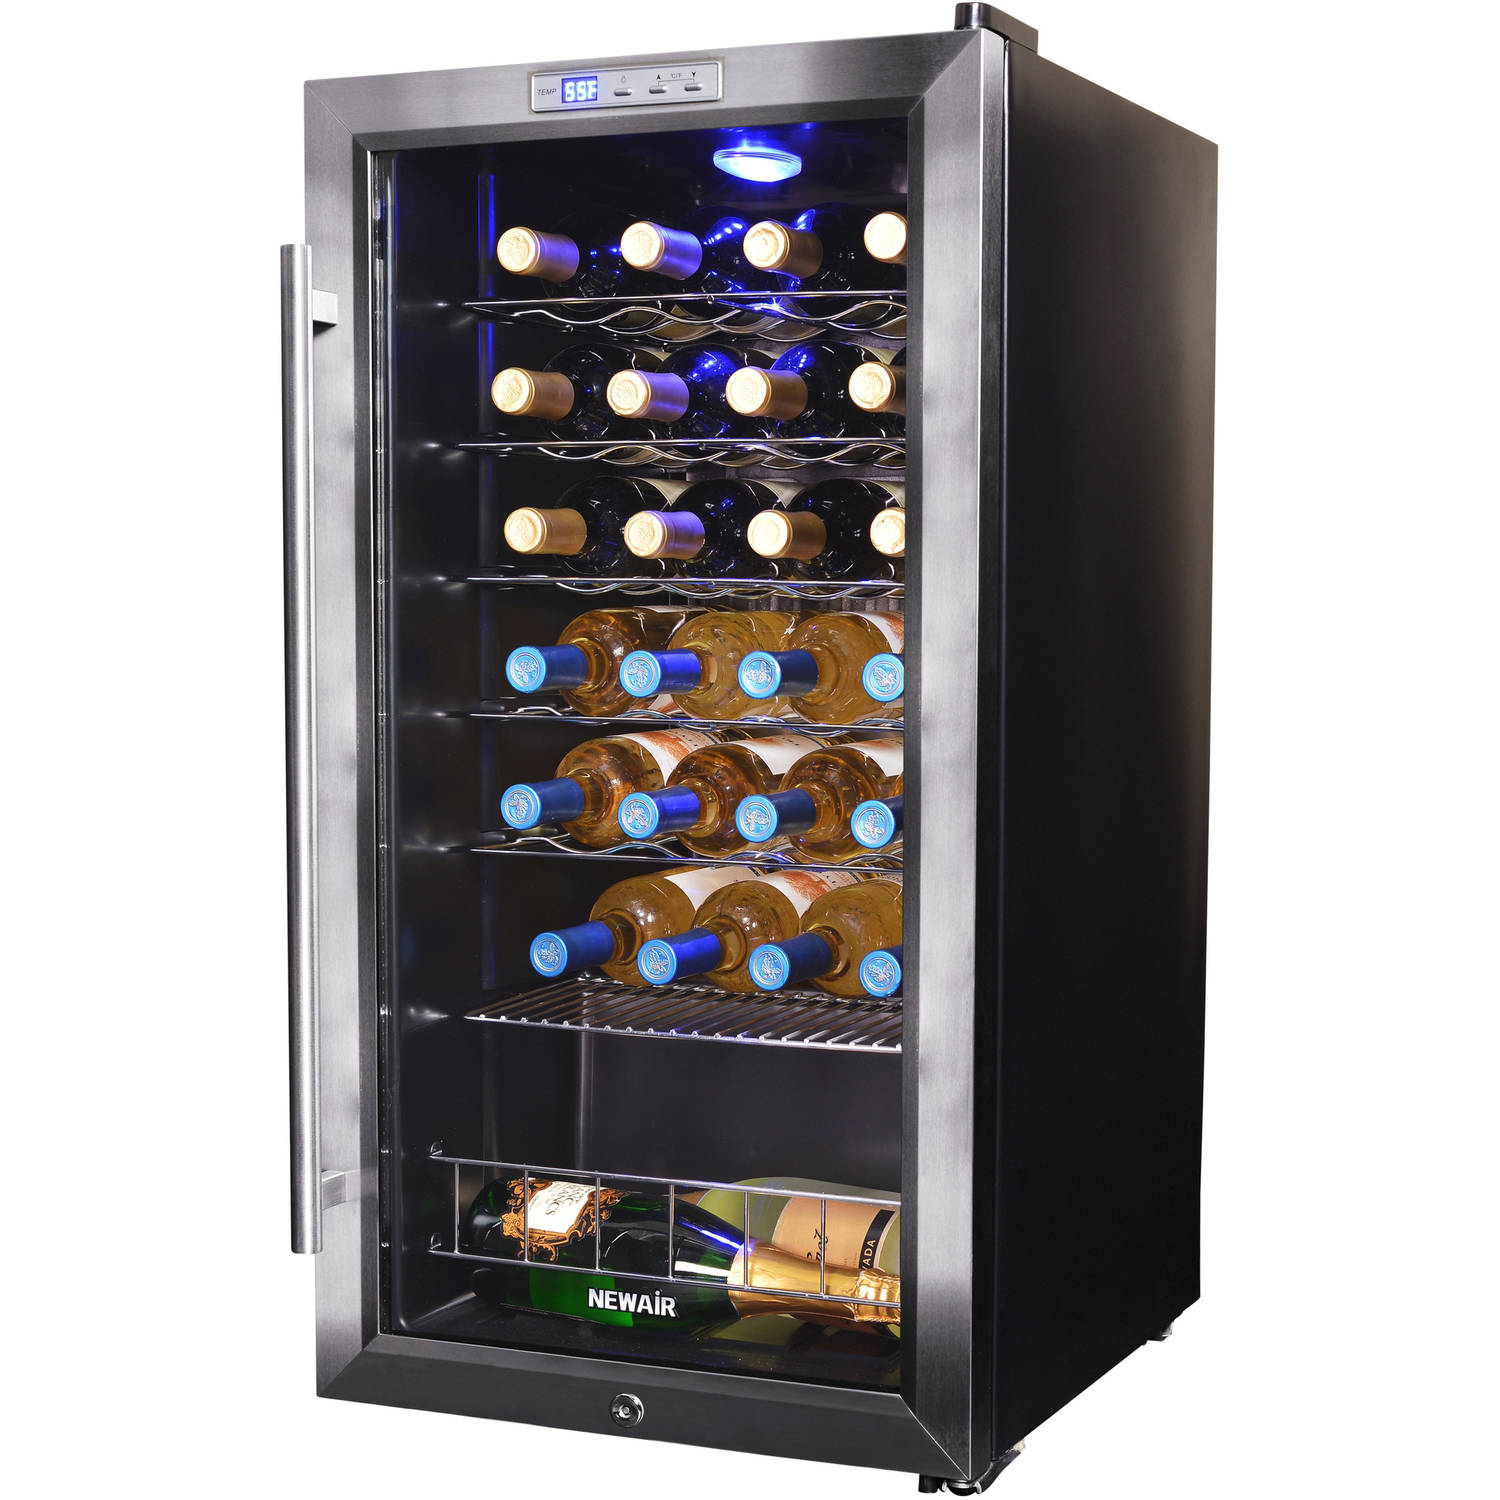 Midea 45 bottle wine cooler stainless steel Wine cooler brands